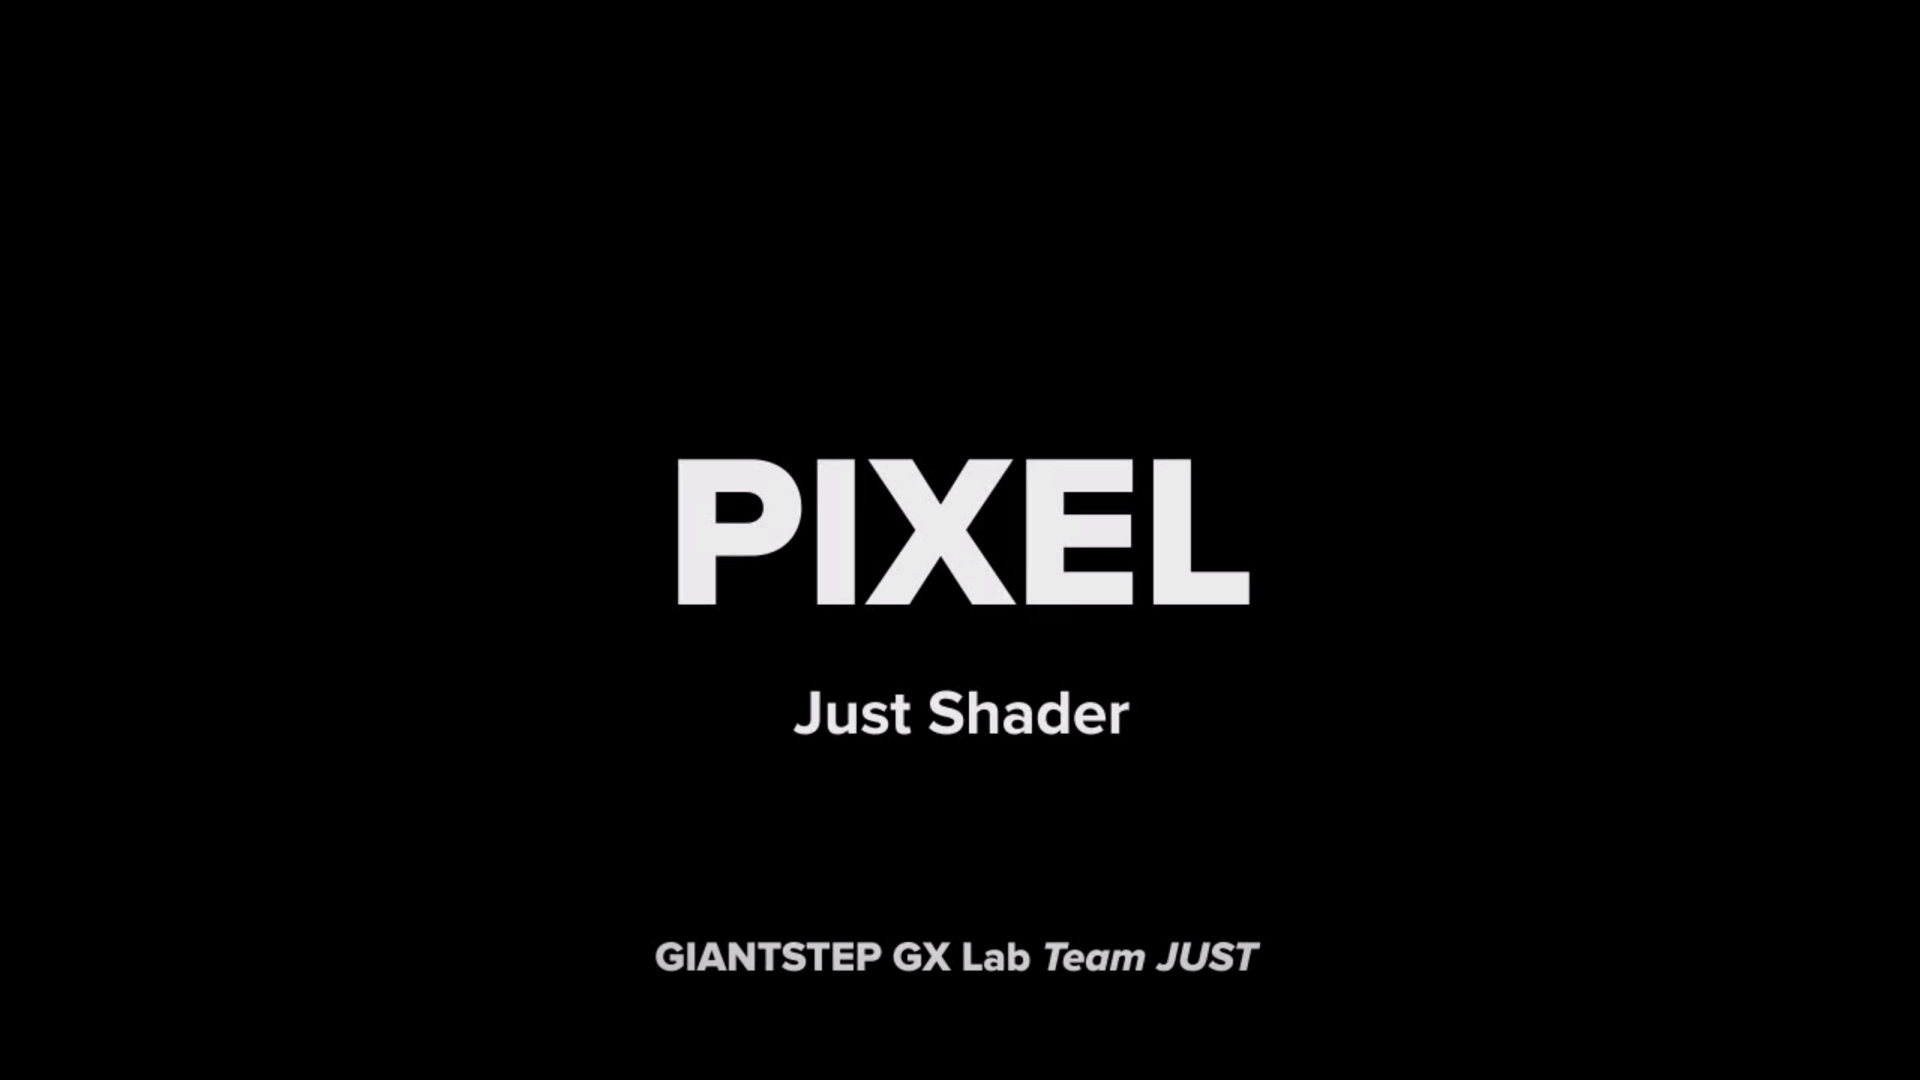 Just Shader 3rd - Pixel